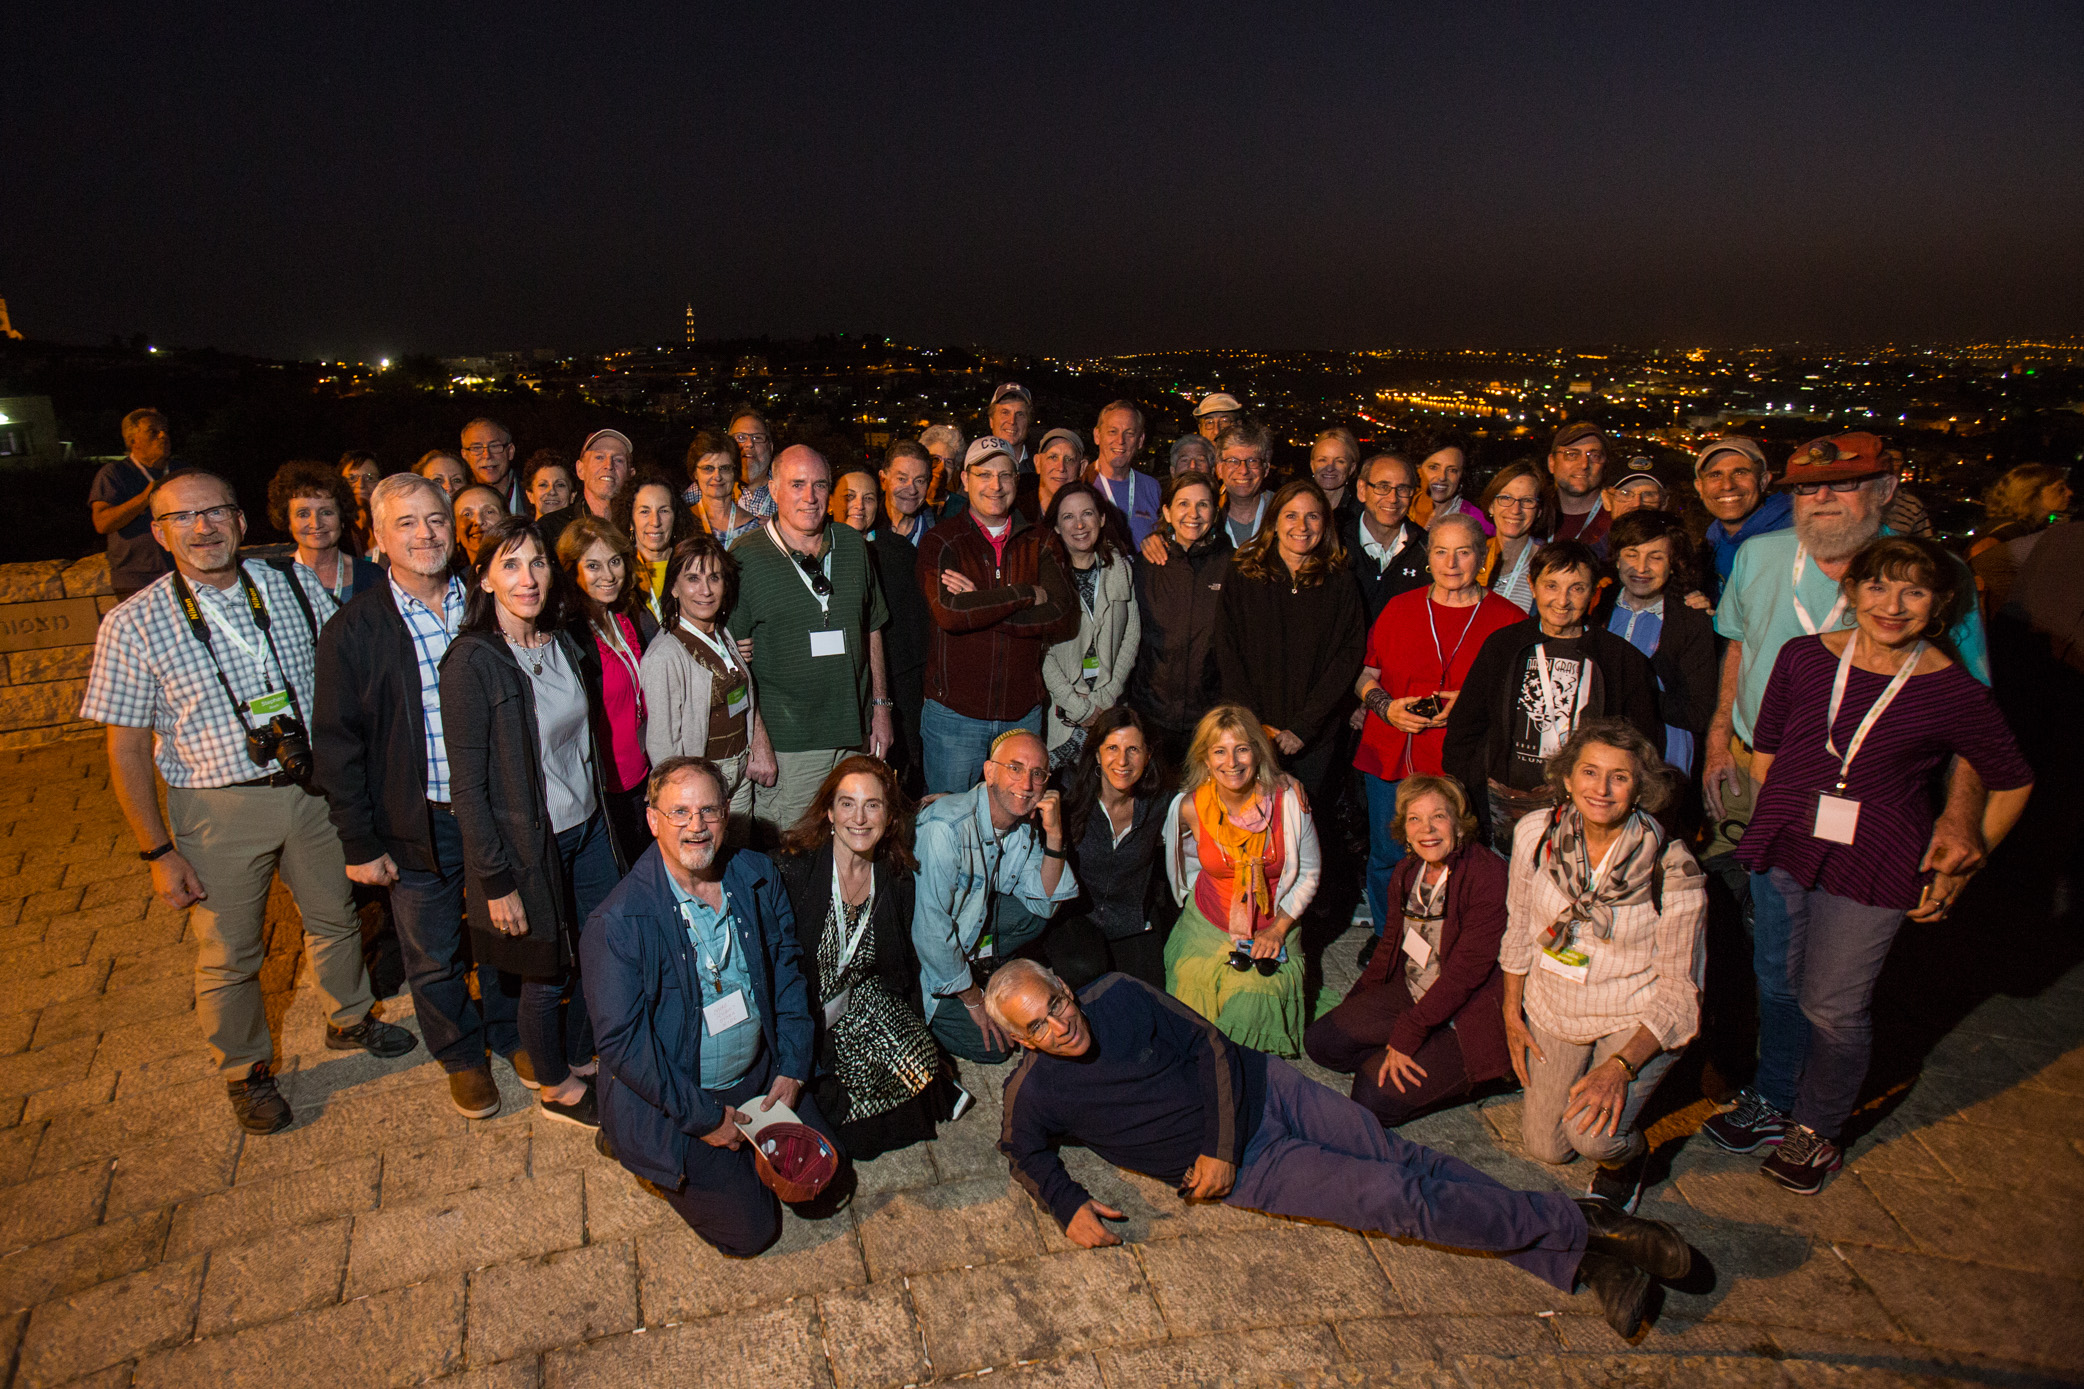 Group Photo (Overlooking old city)